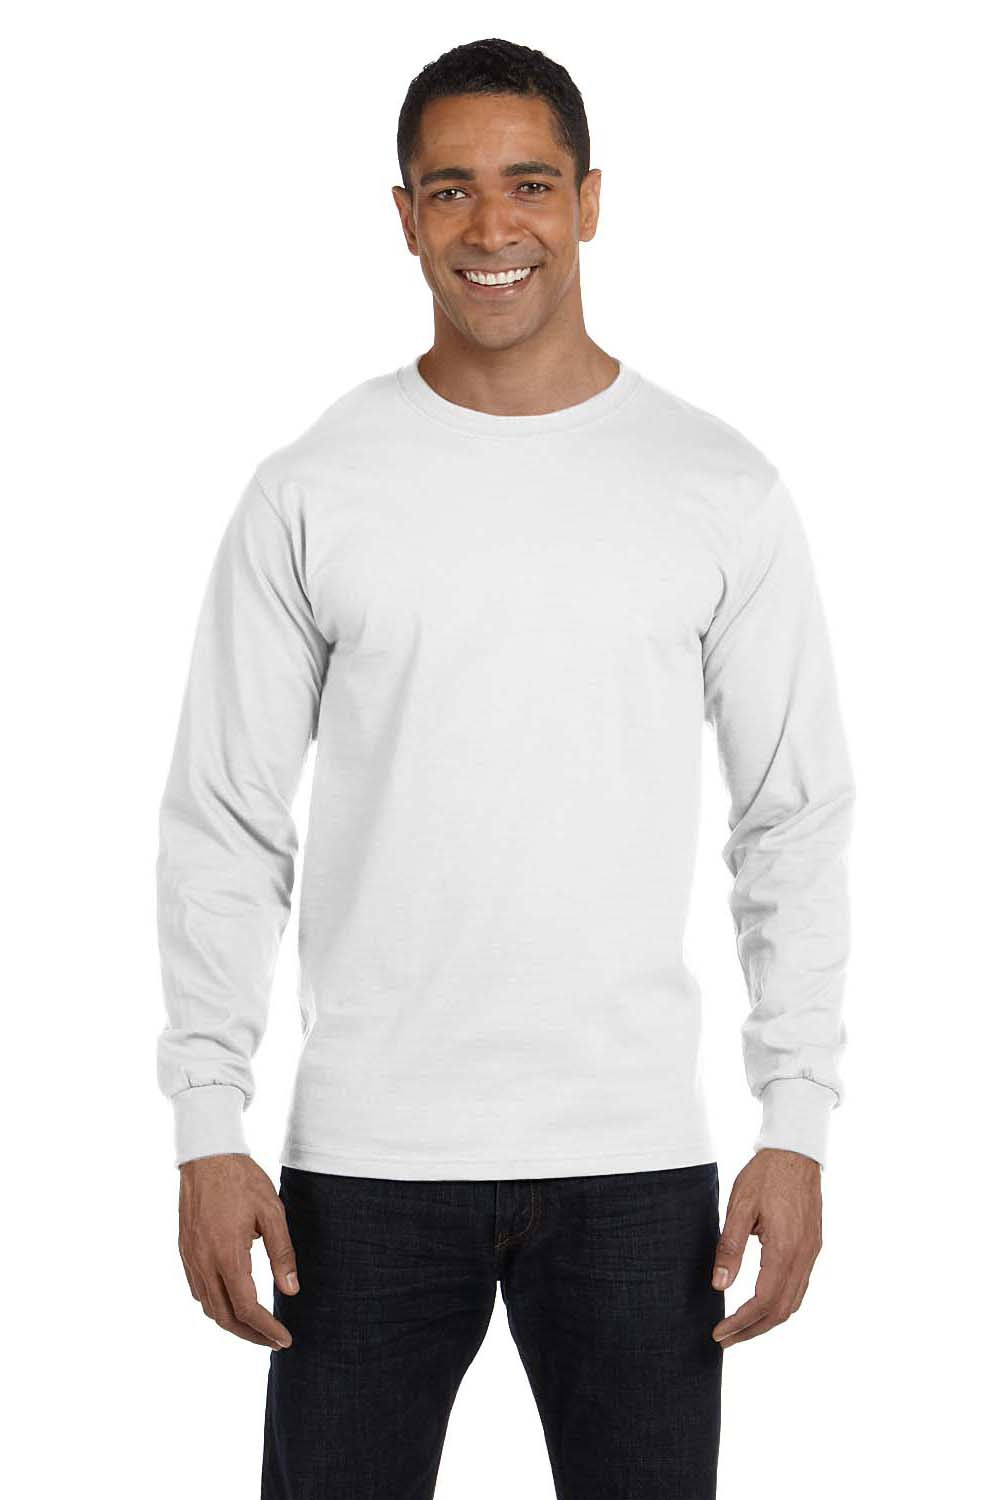 Hanes 5286 Mens ComfortSoft Long Sleeve Crewneck T-Shirt White Front